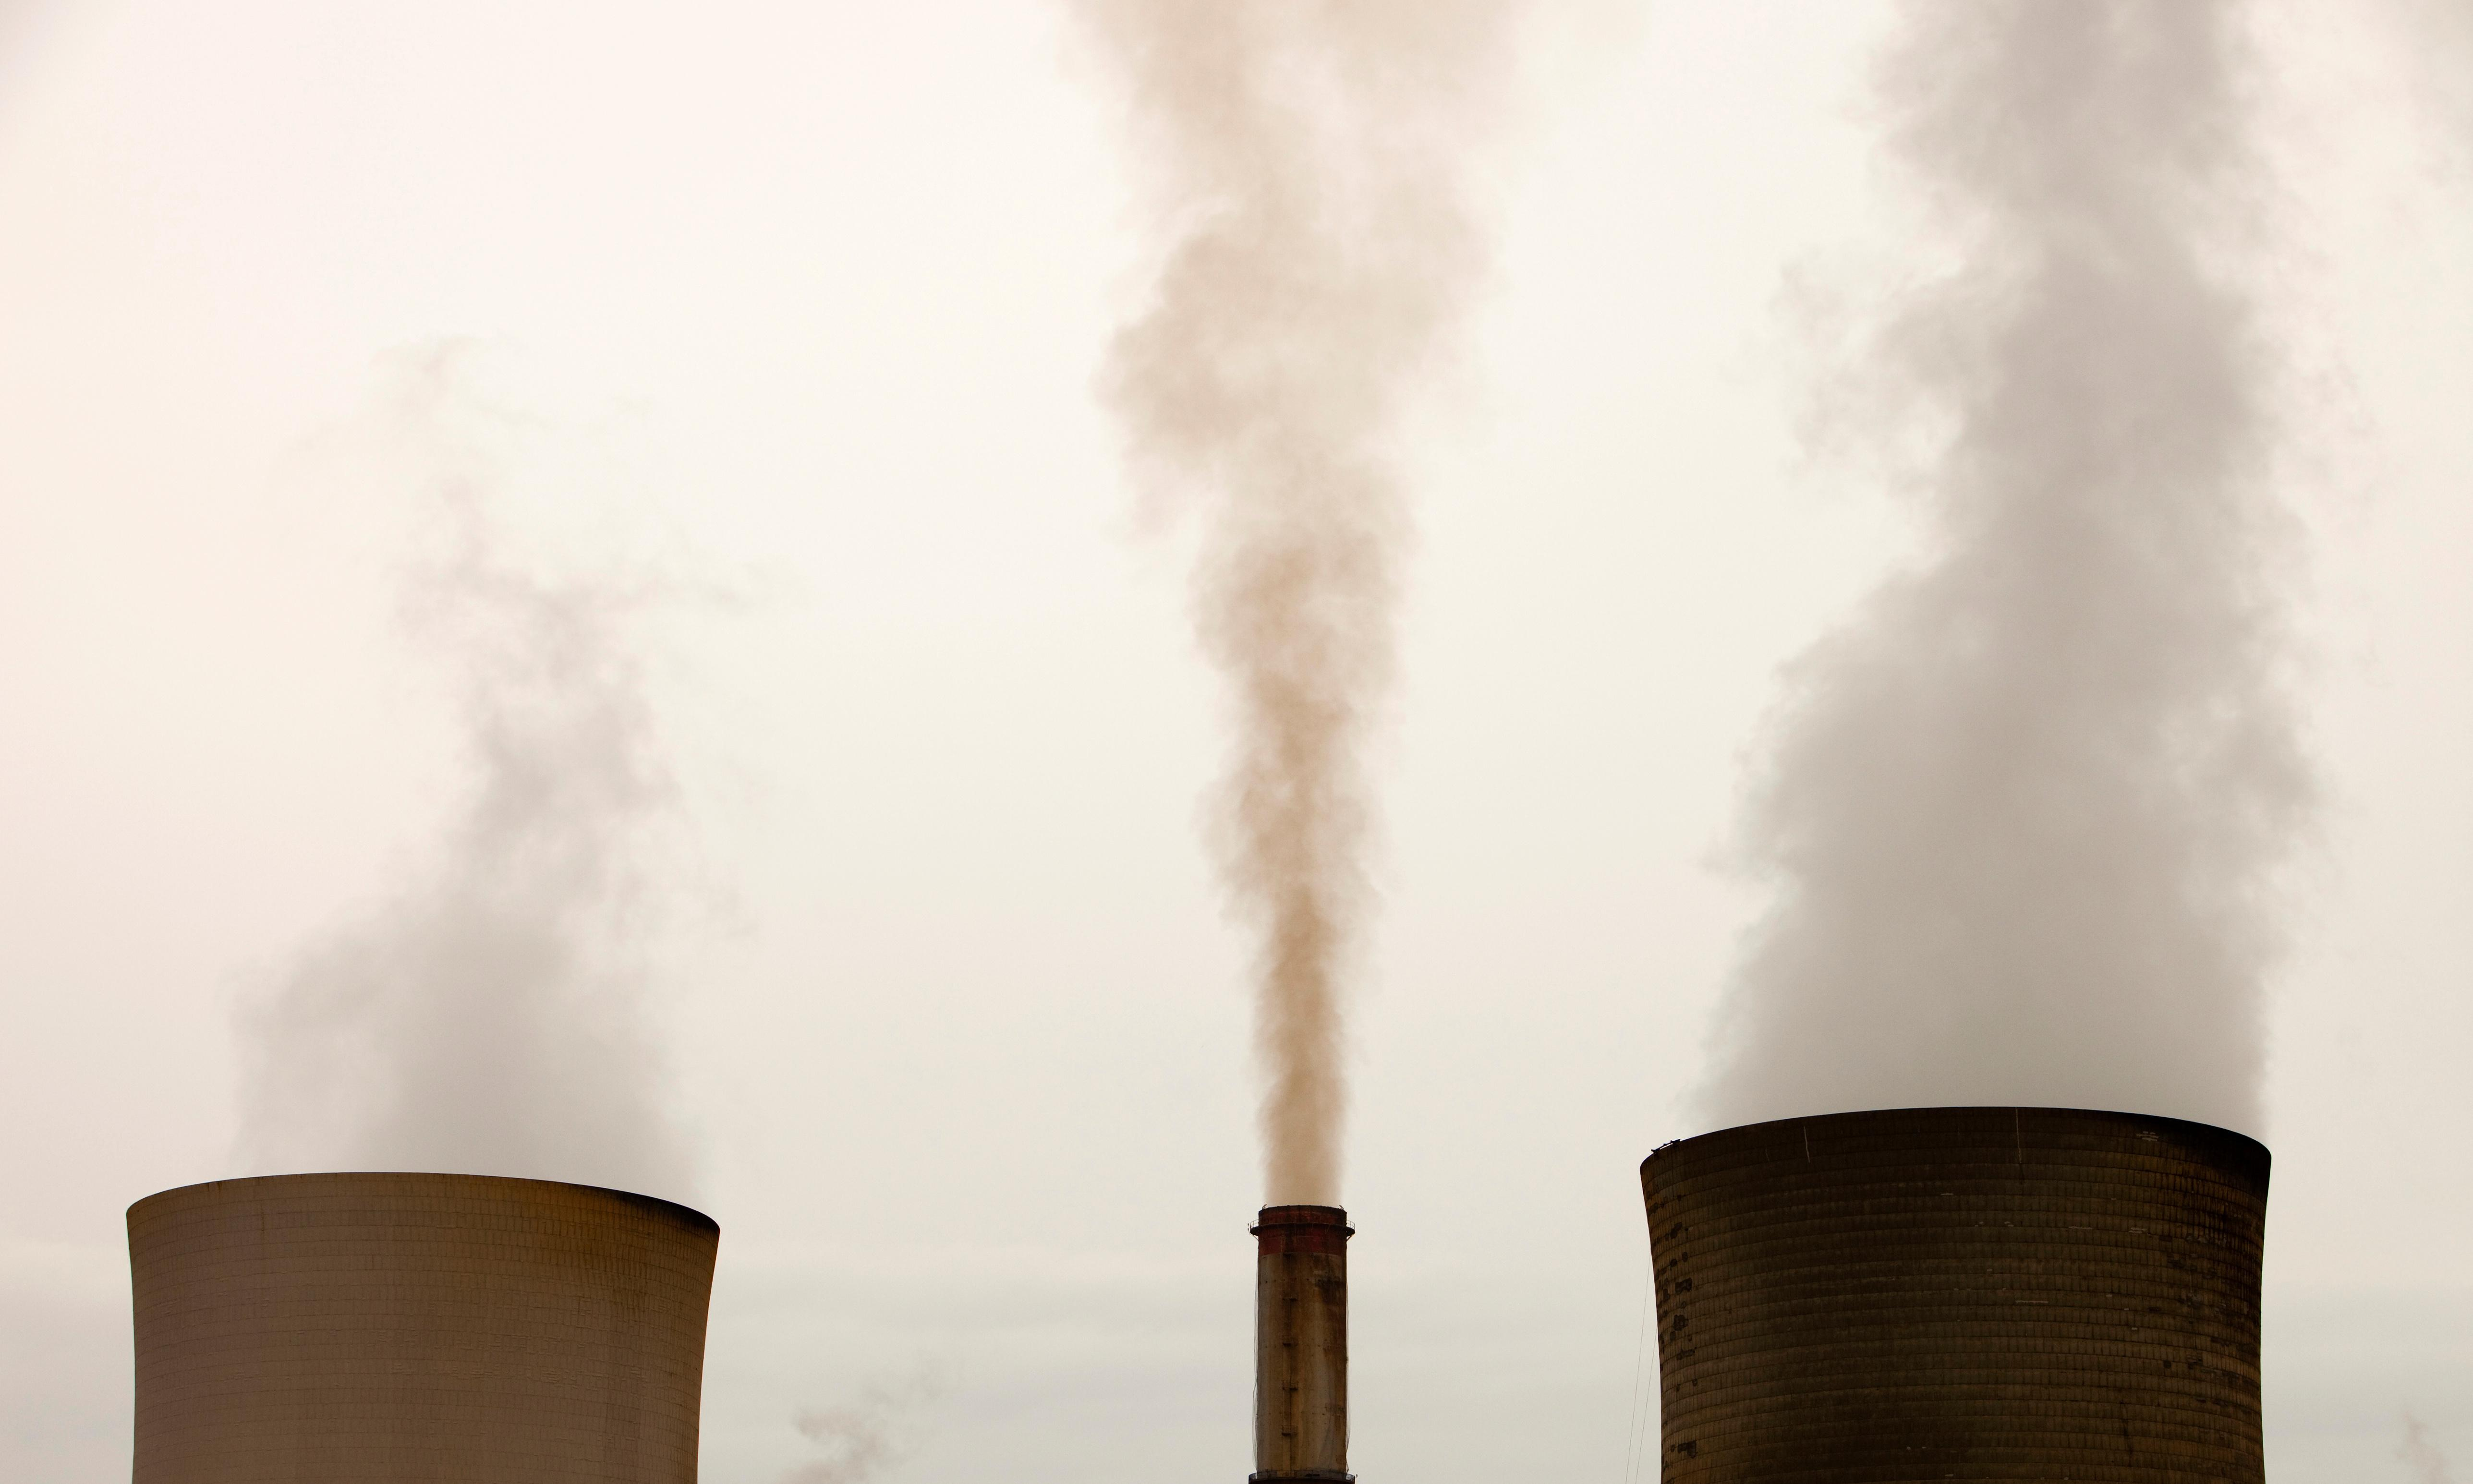 Out on its own: Australia the only country to use climate funding to upgrade coal-fired plants